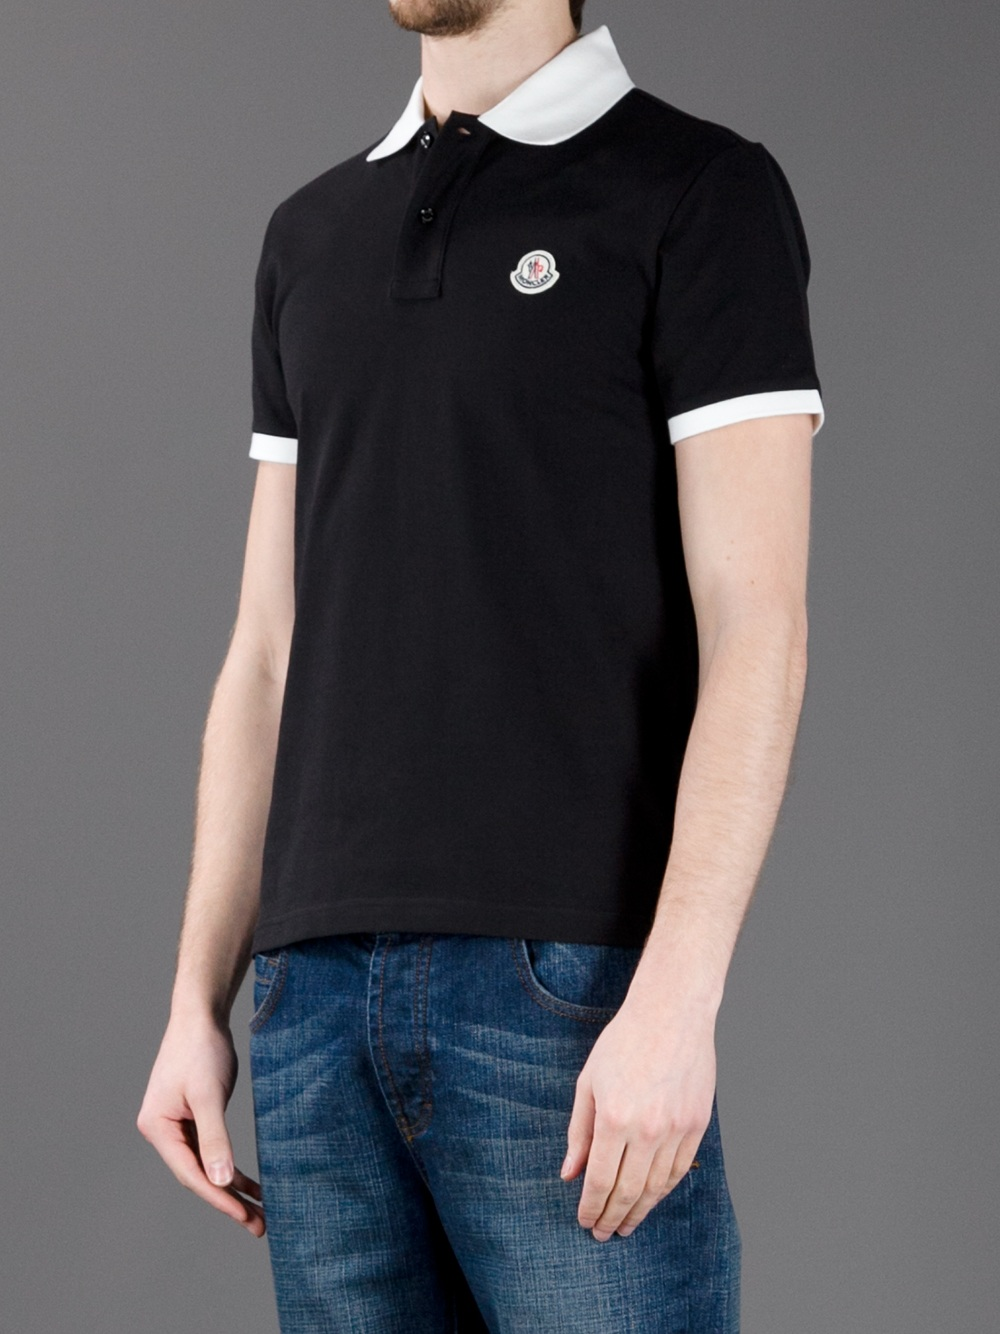 moncler black polo shirt